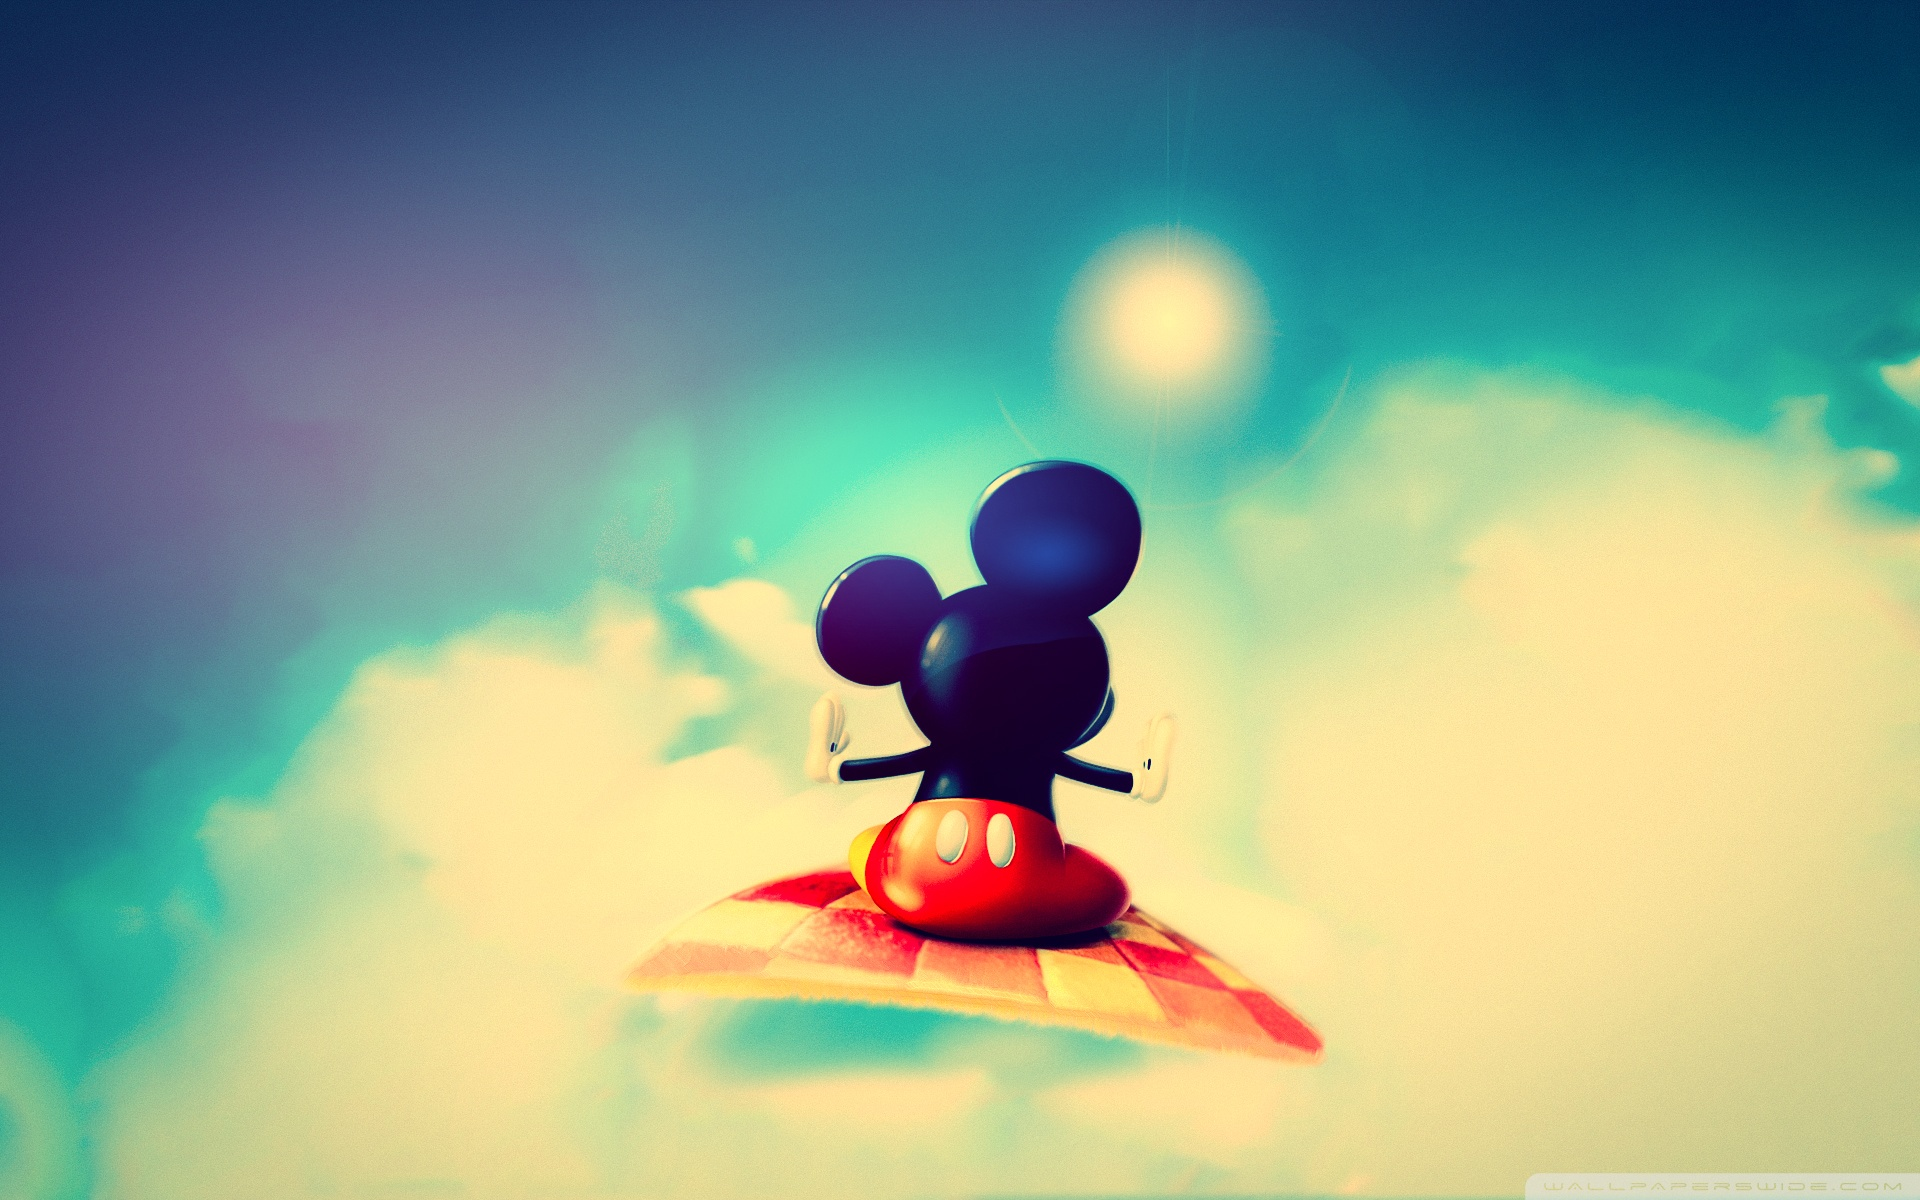 Cute Disney Screensavers